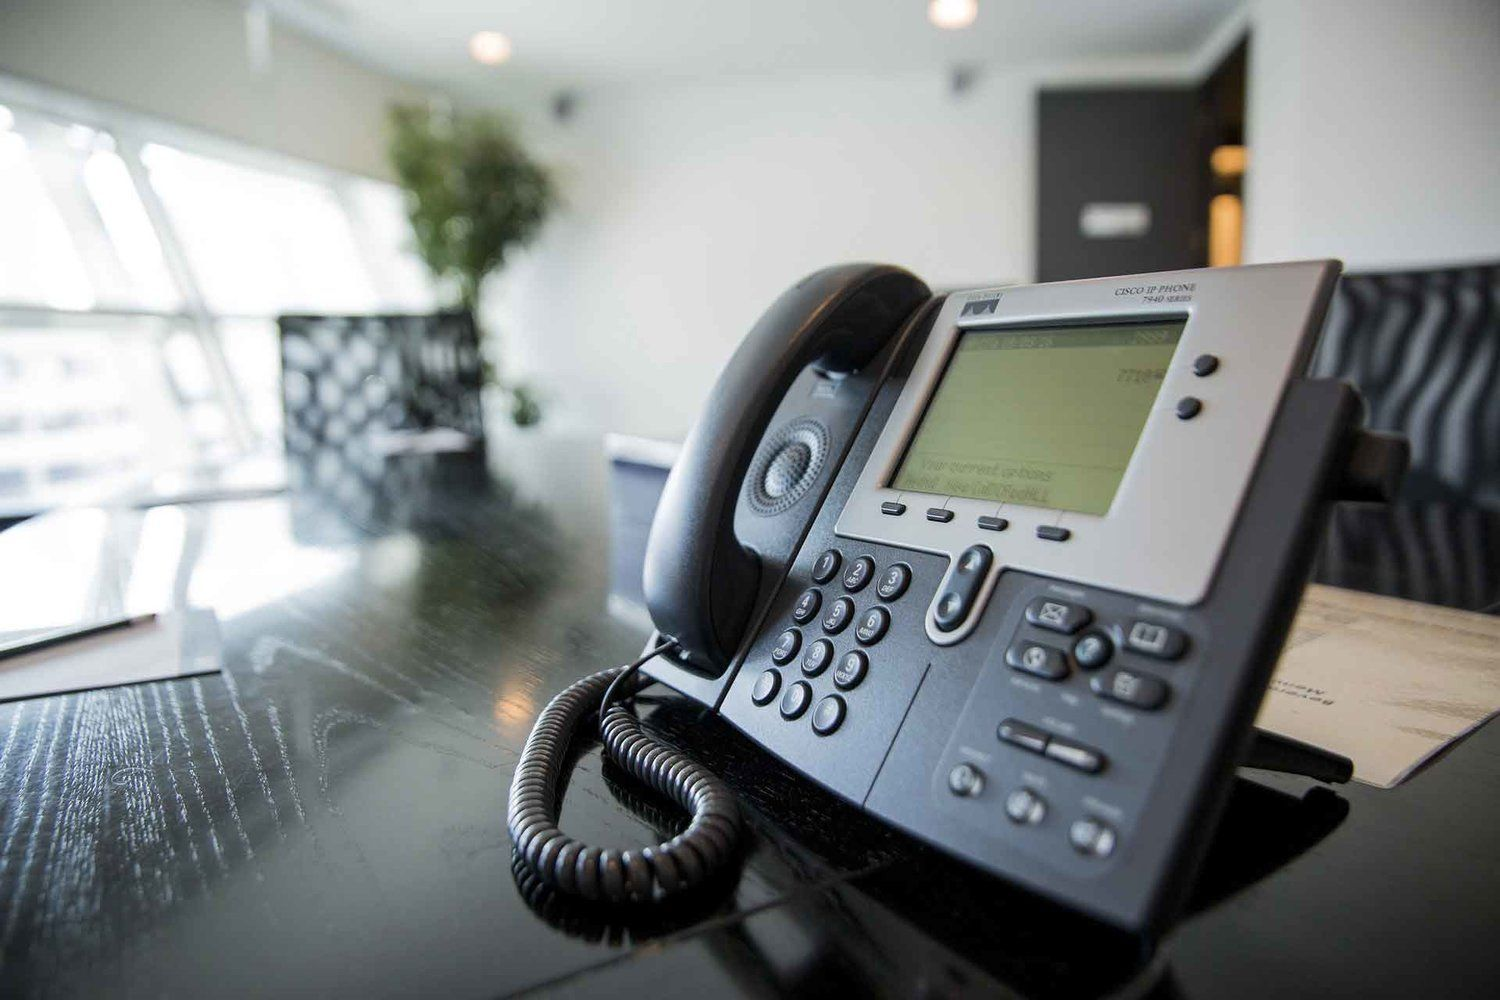 What+is+VoIP+and+how+does+it+work%3f+With+so+much+new+